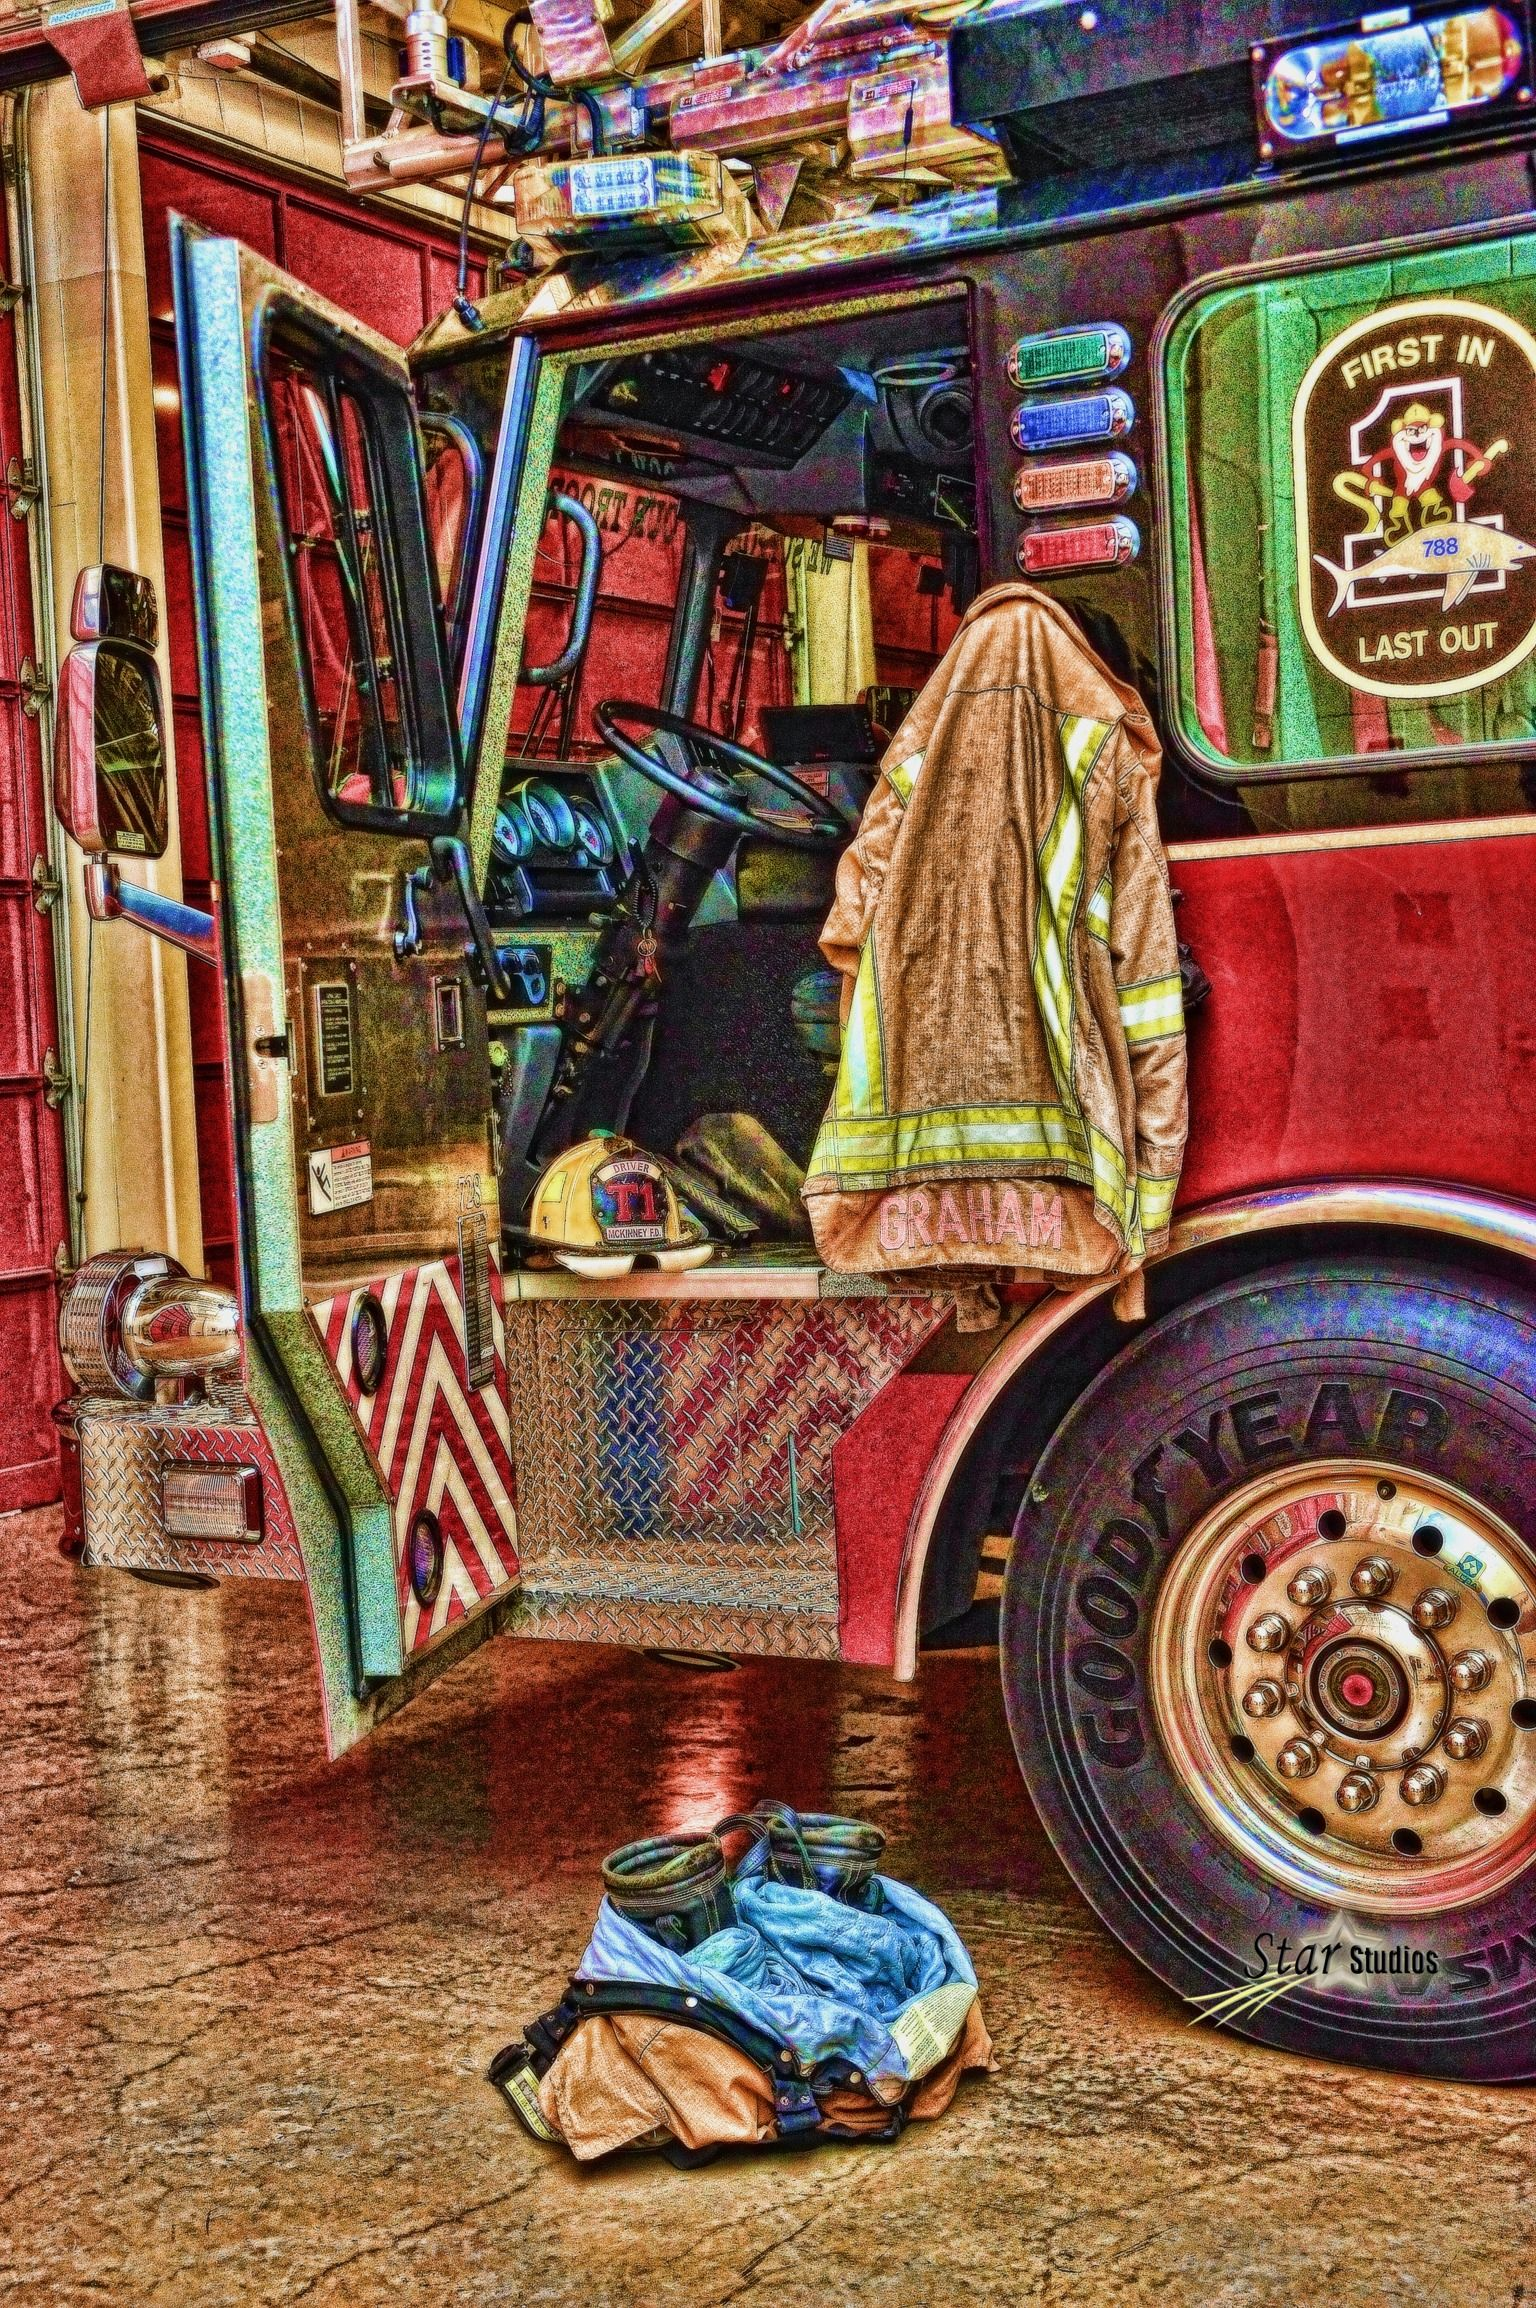 McKinney Firefighters portrait turned into an animation